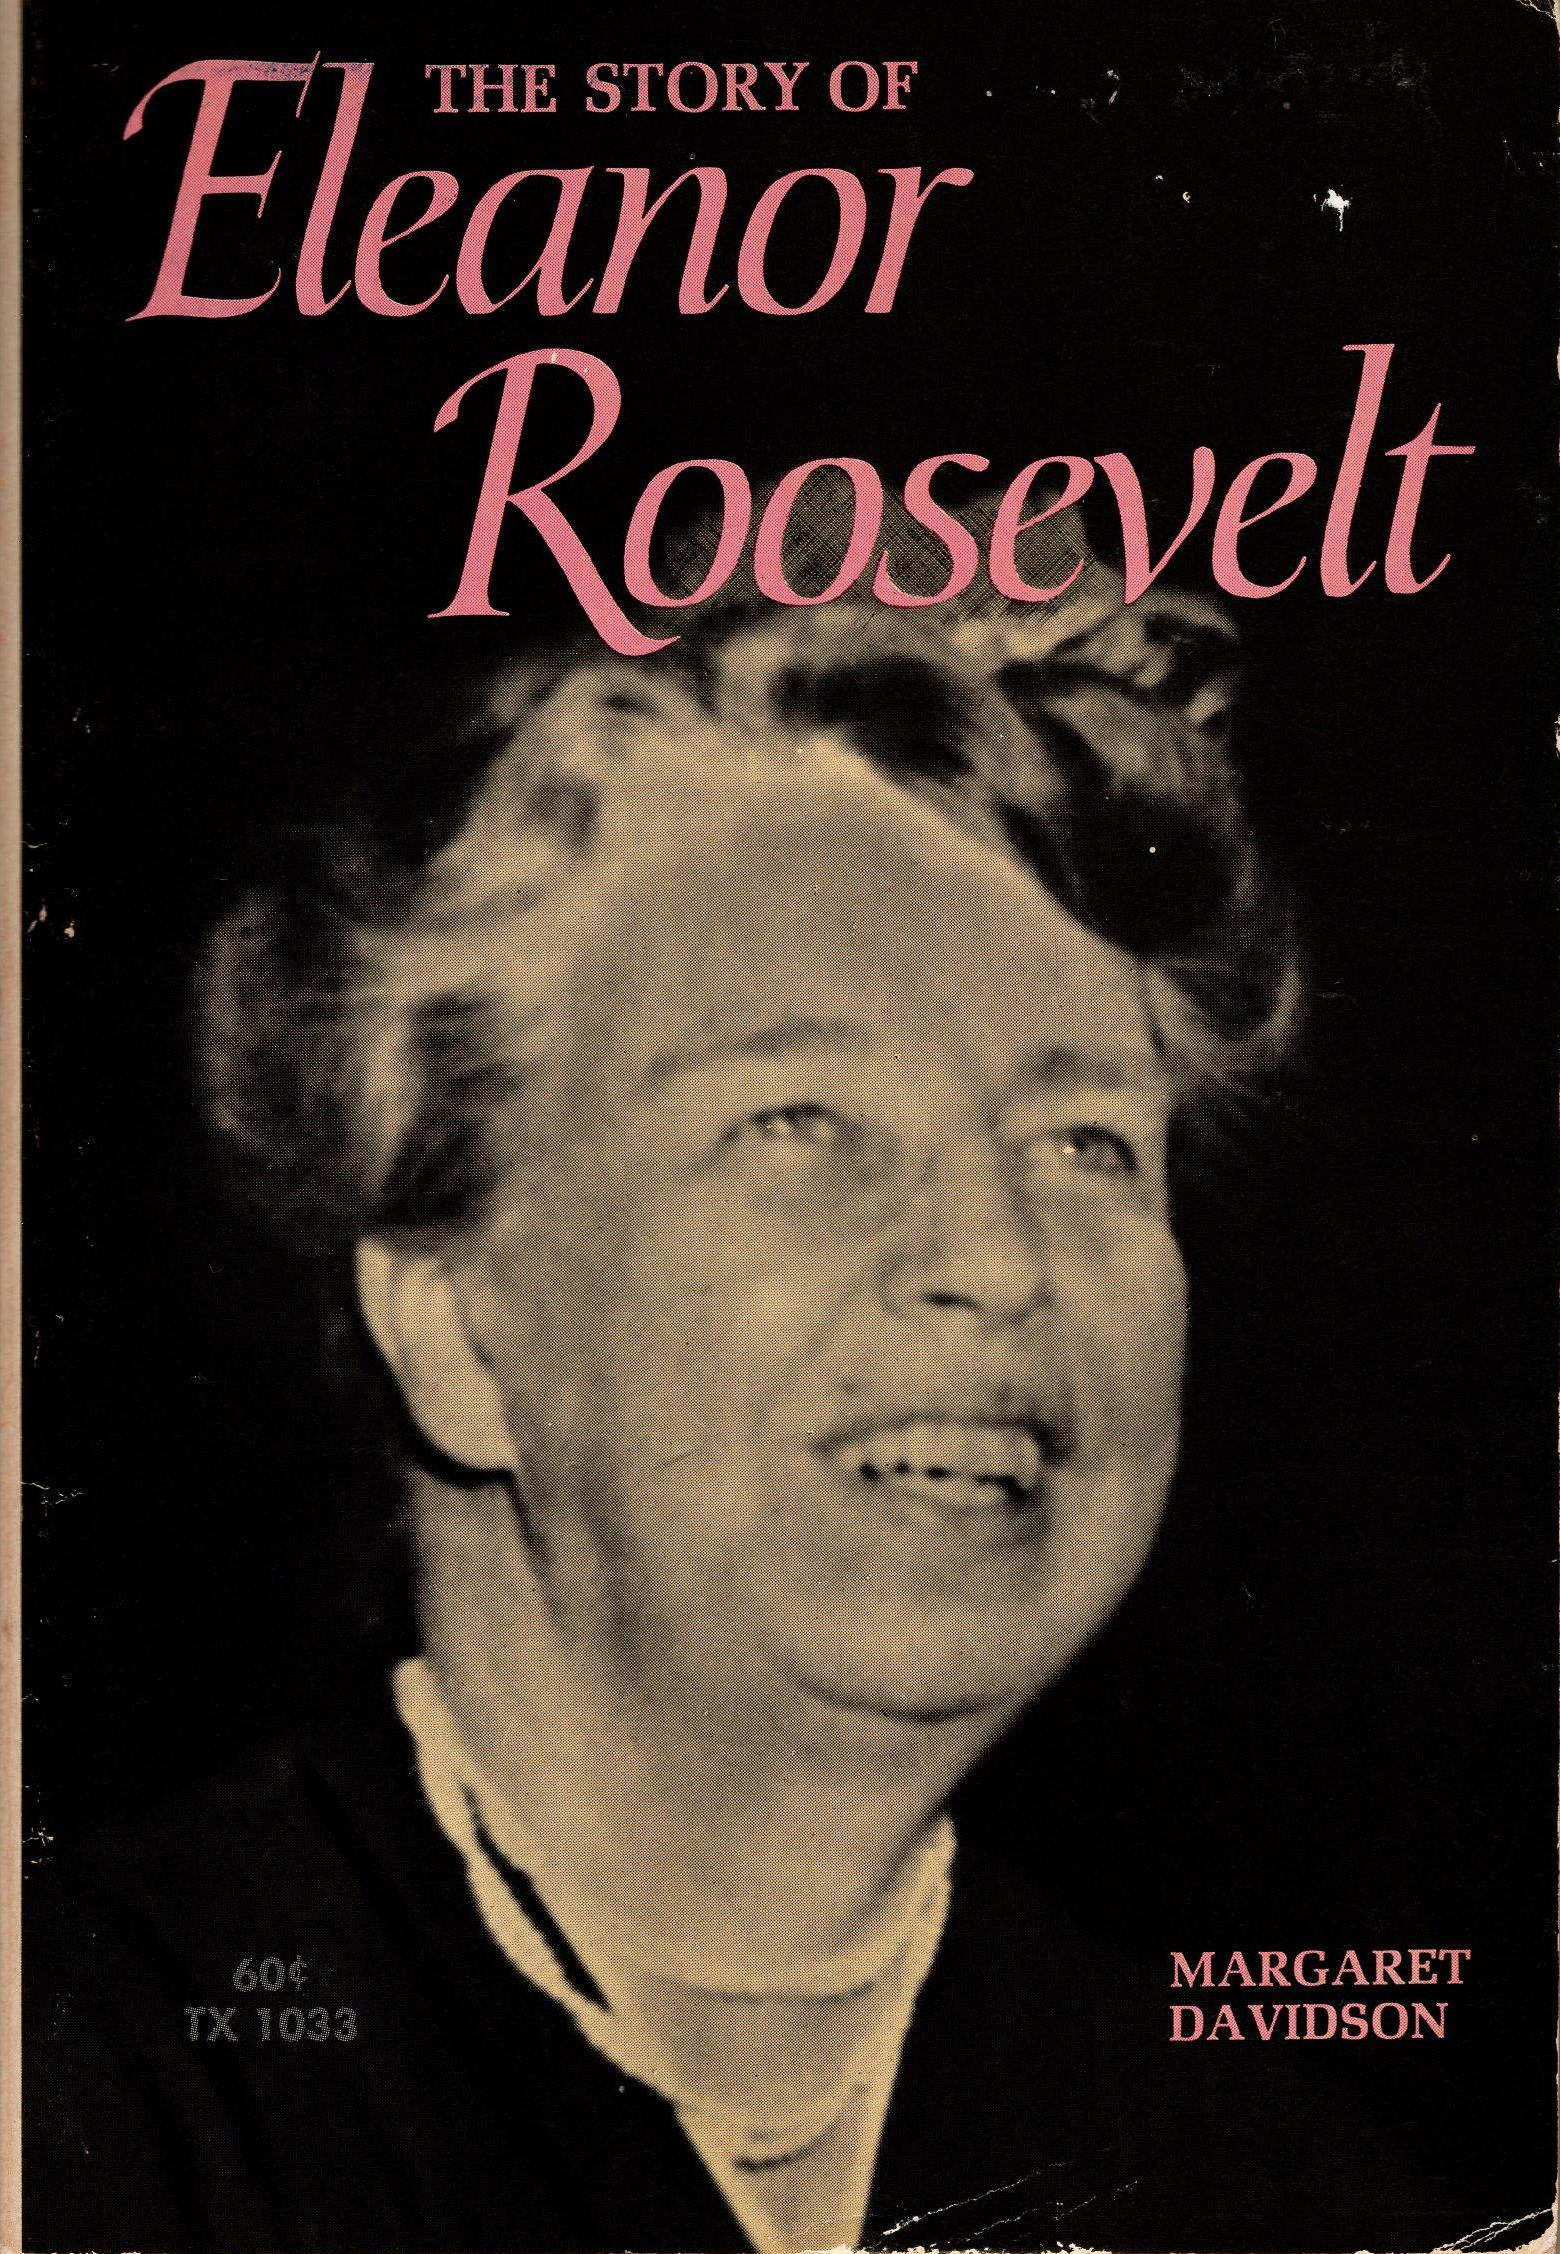 Image for STORY OF ELEANOR ROOSEVELT, THE